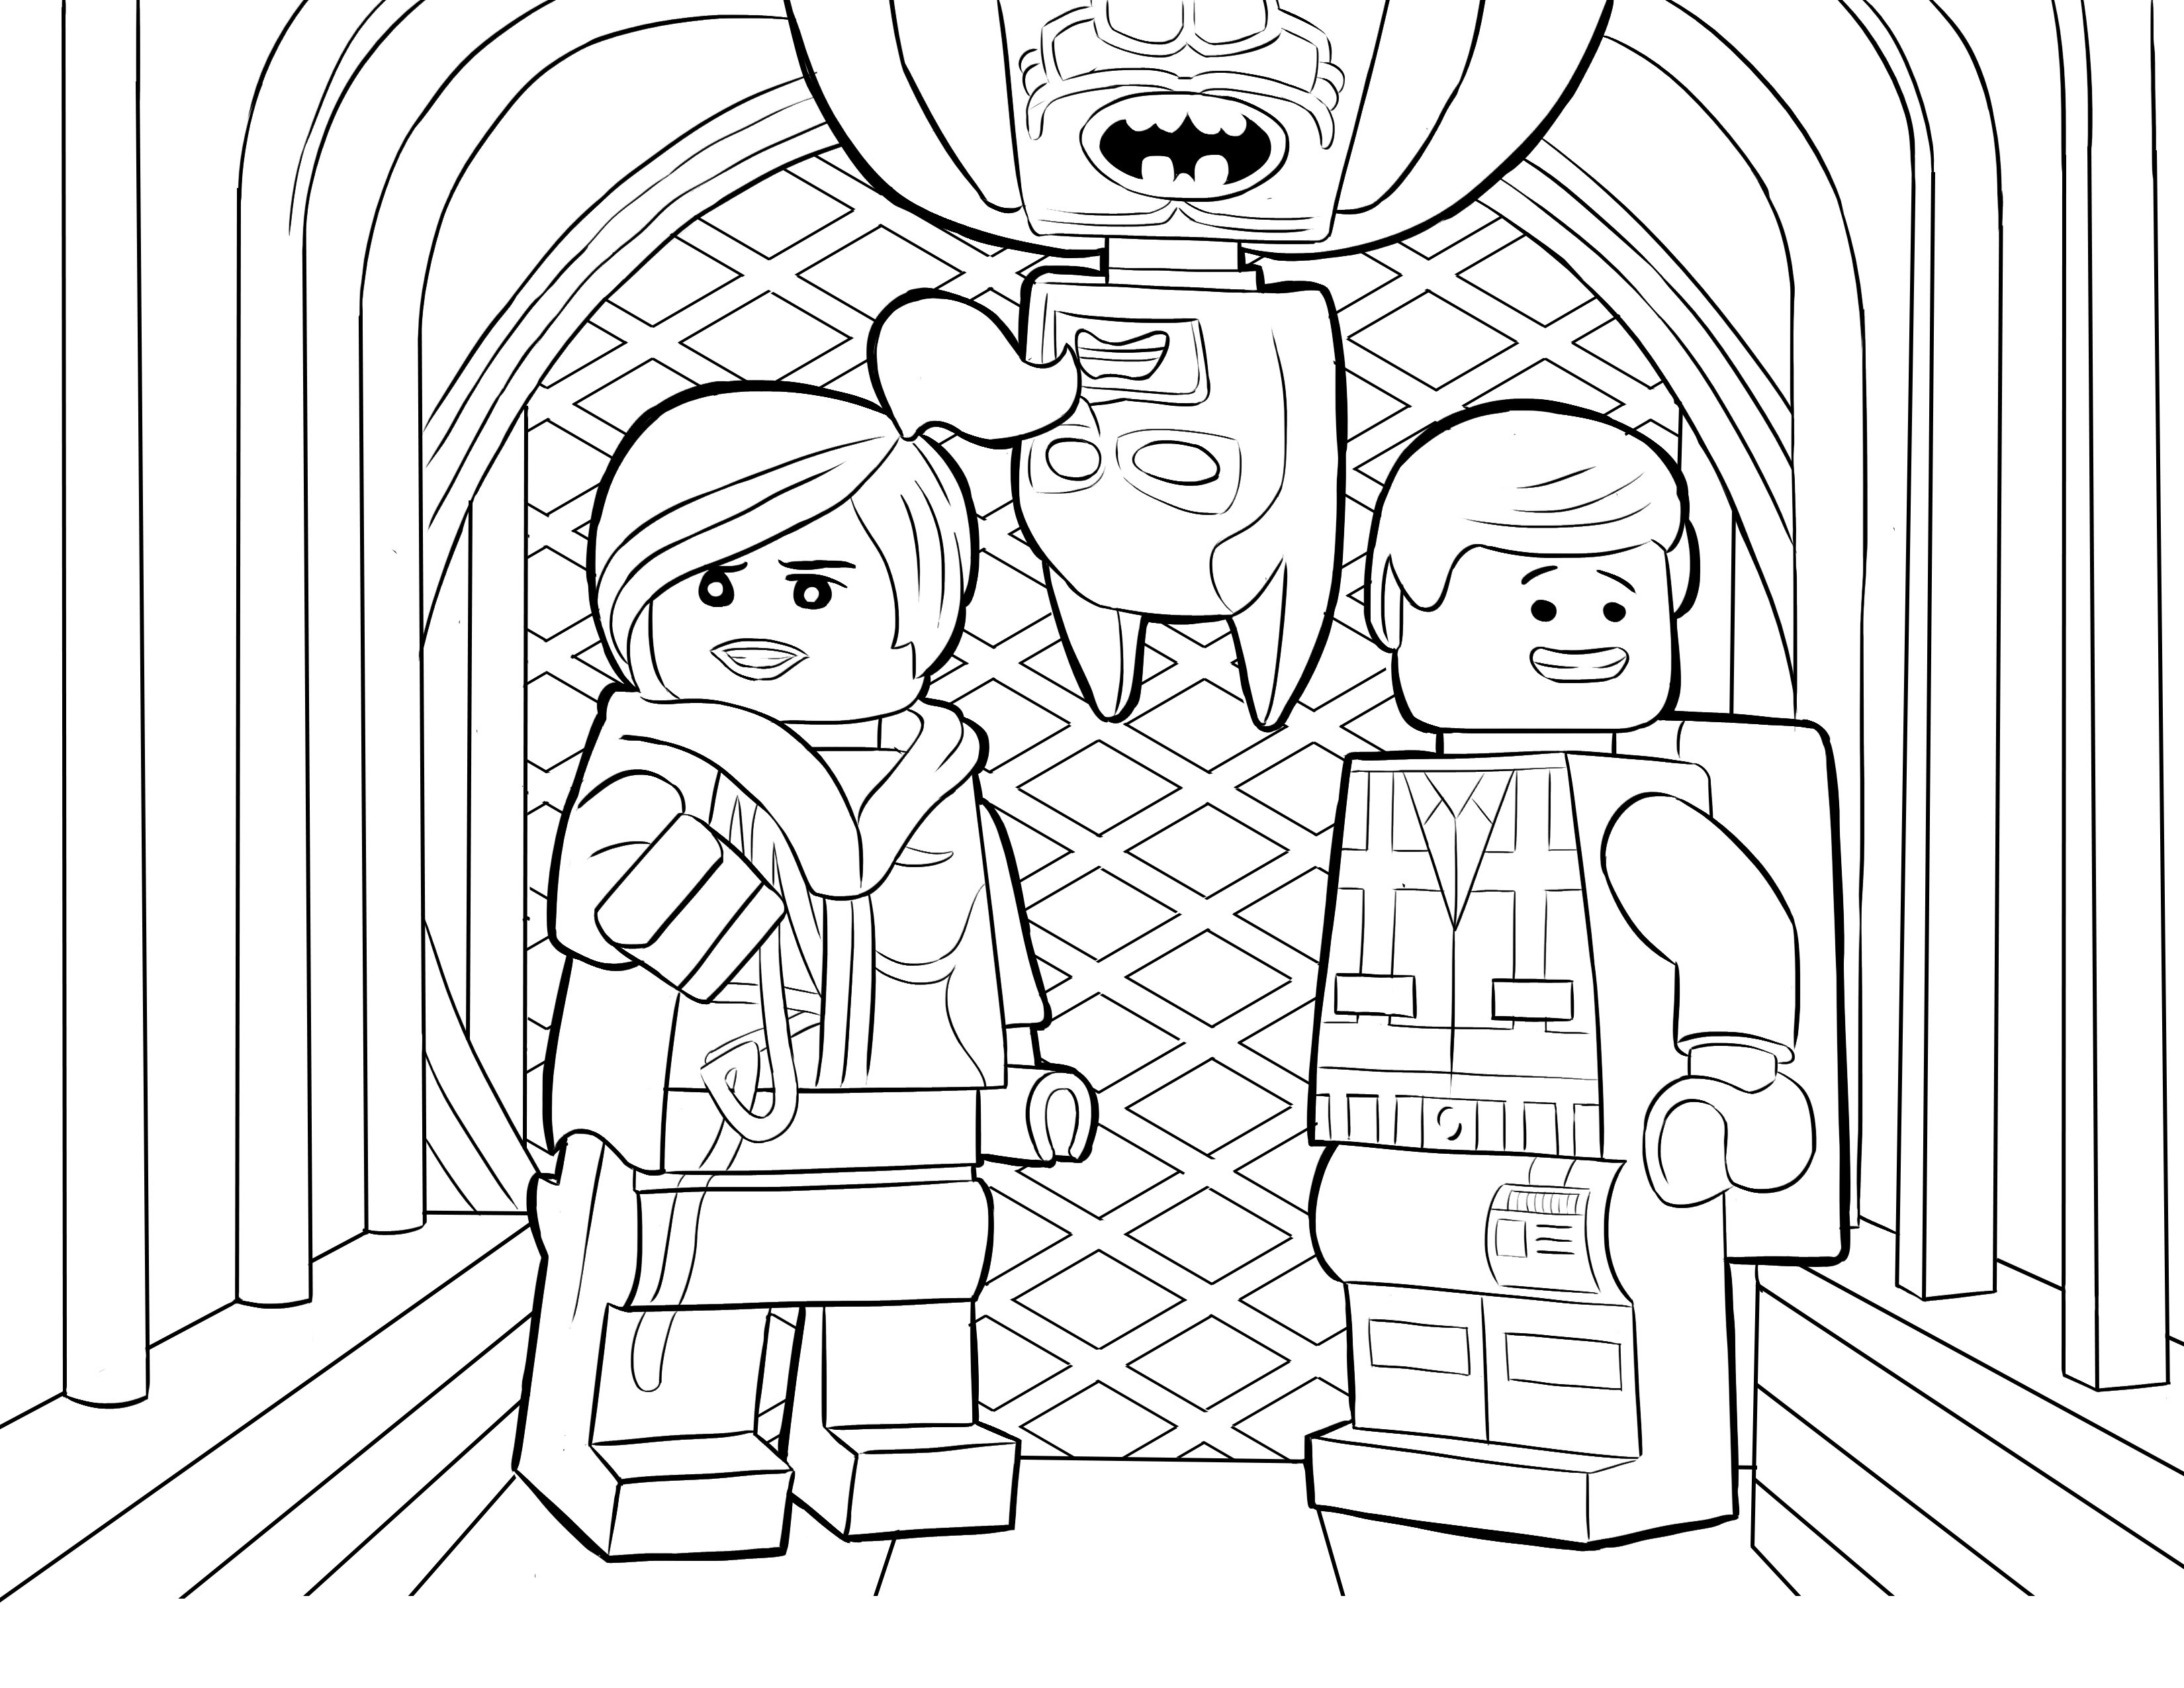 lego colouring in pictures lego people coloring lesson coloring pages for kids in colouring pictures lego